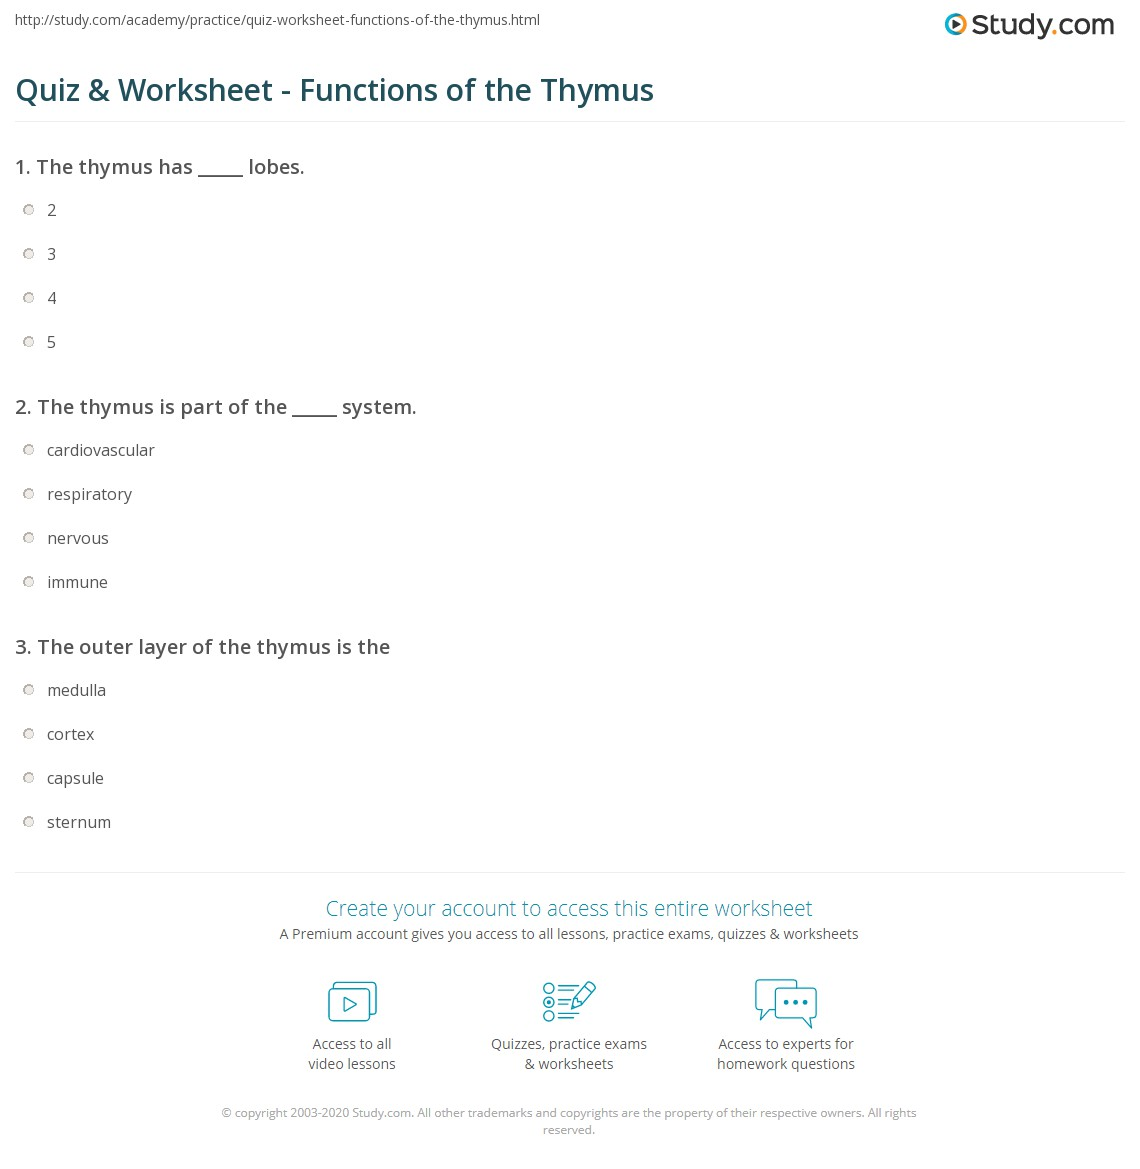 Quiz & Worksheet - Functions of the Thymus | Study.com